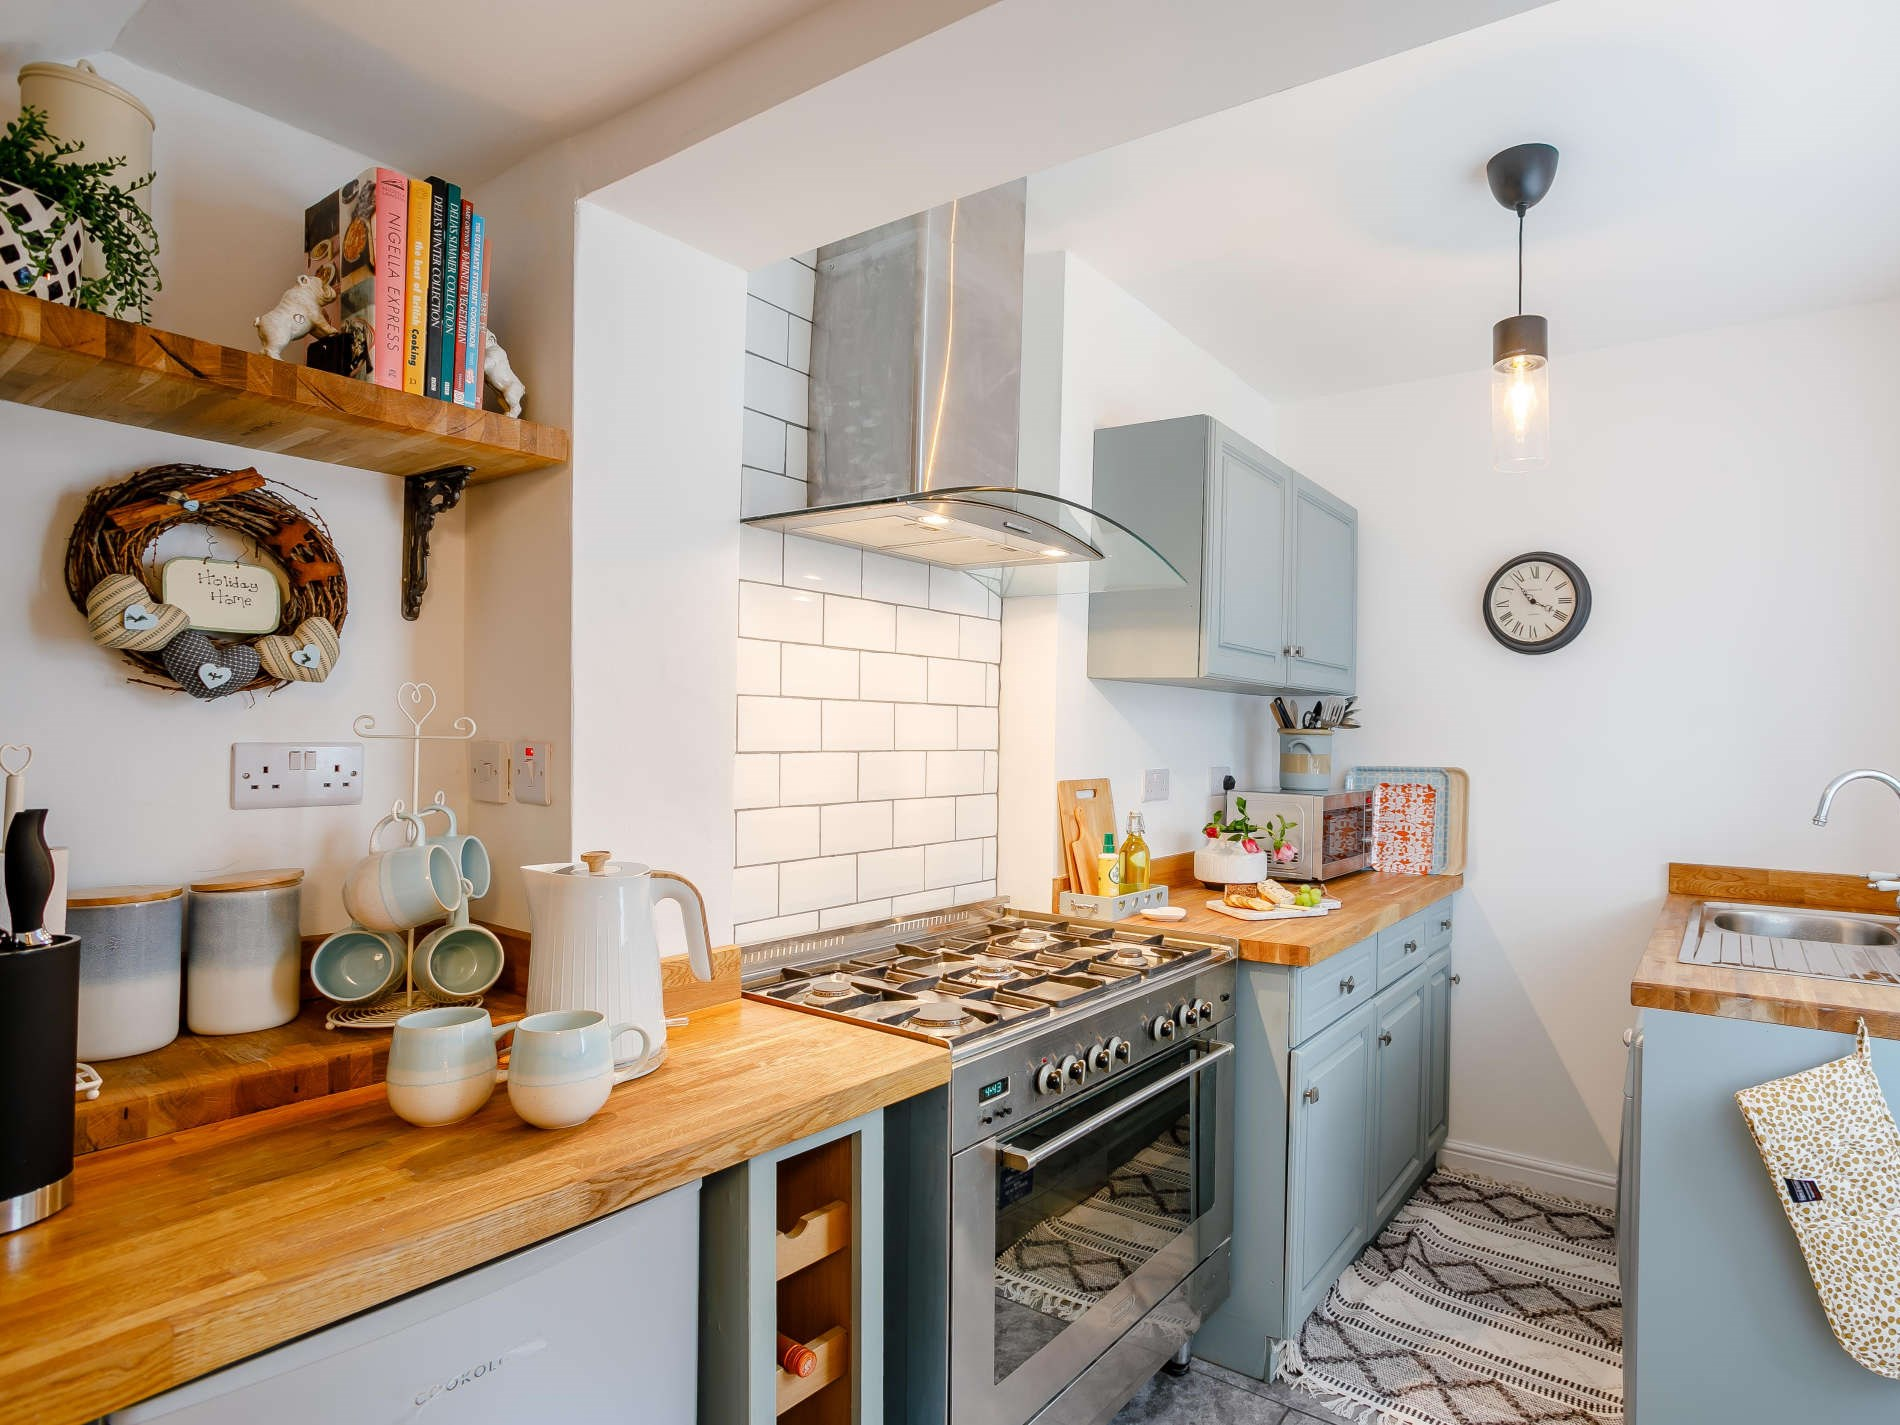 3 Bedroom Cottage in Scarborough, The Lake District and Cumbria